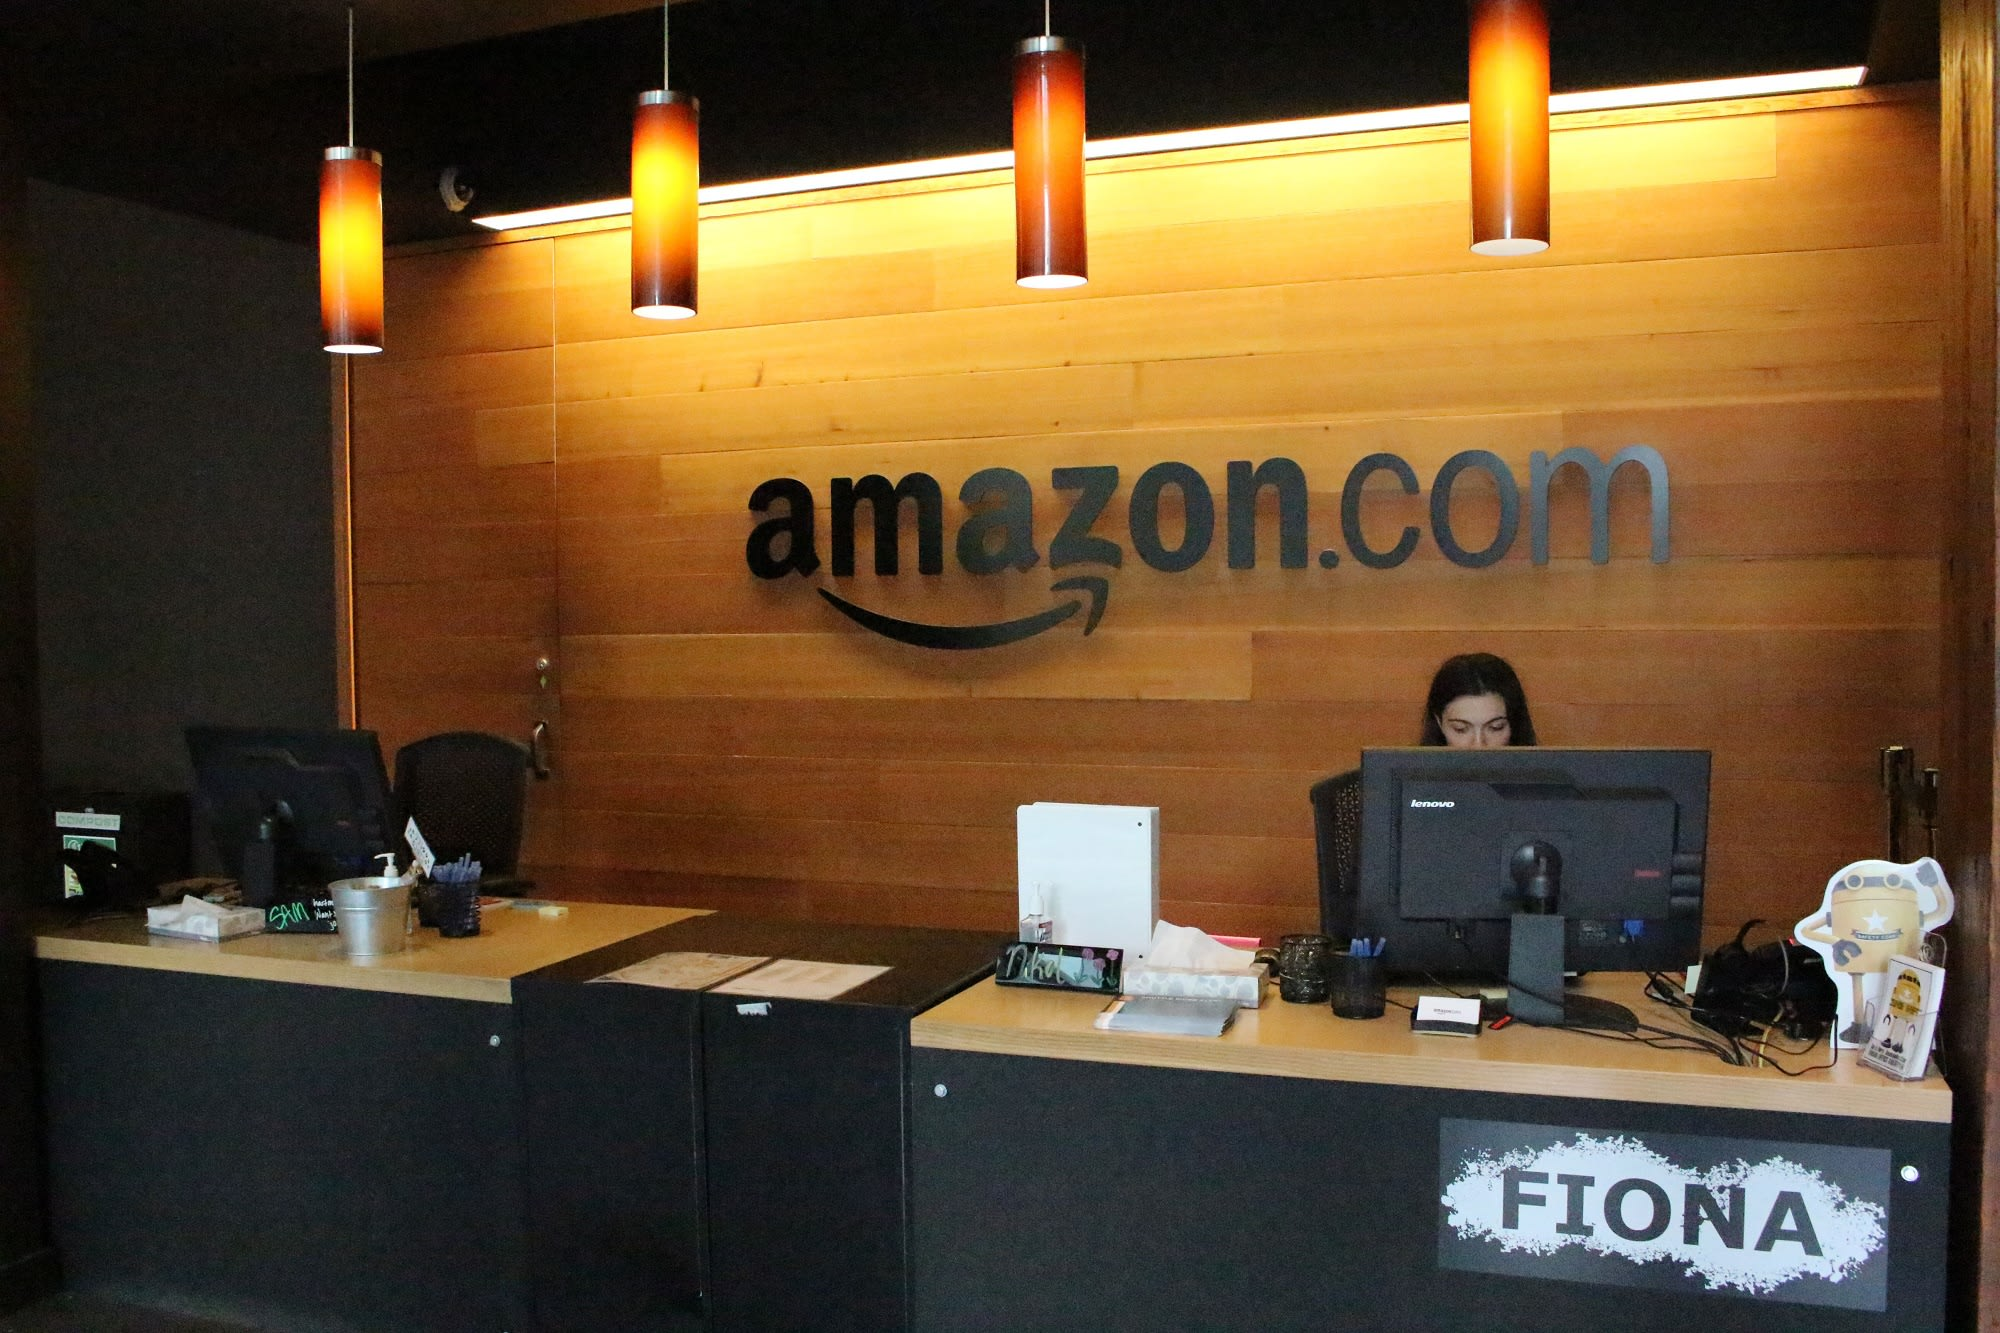 Amazon tells employees in New York and New Jersey to work from home as coronavirus spreads